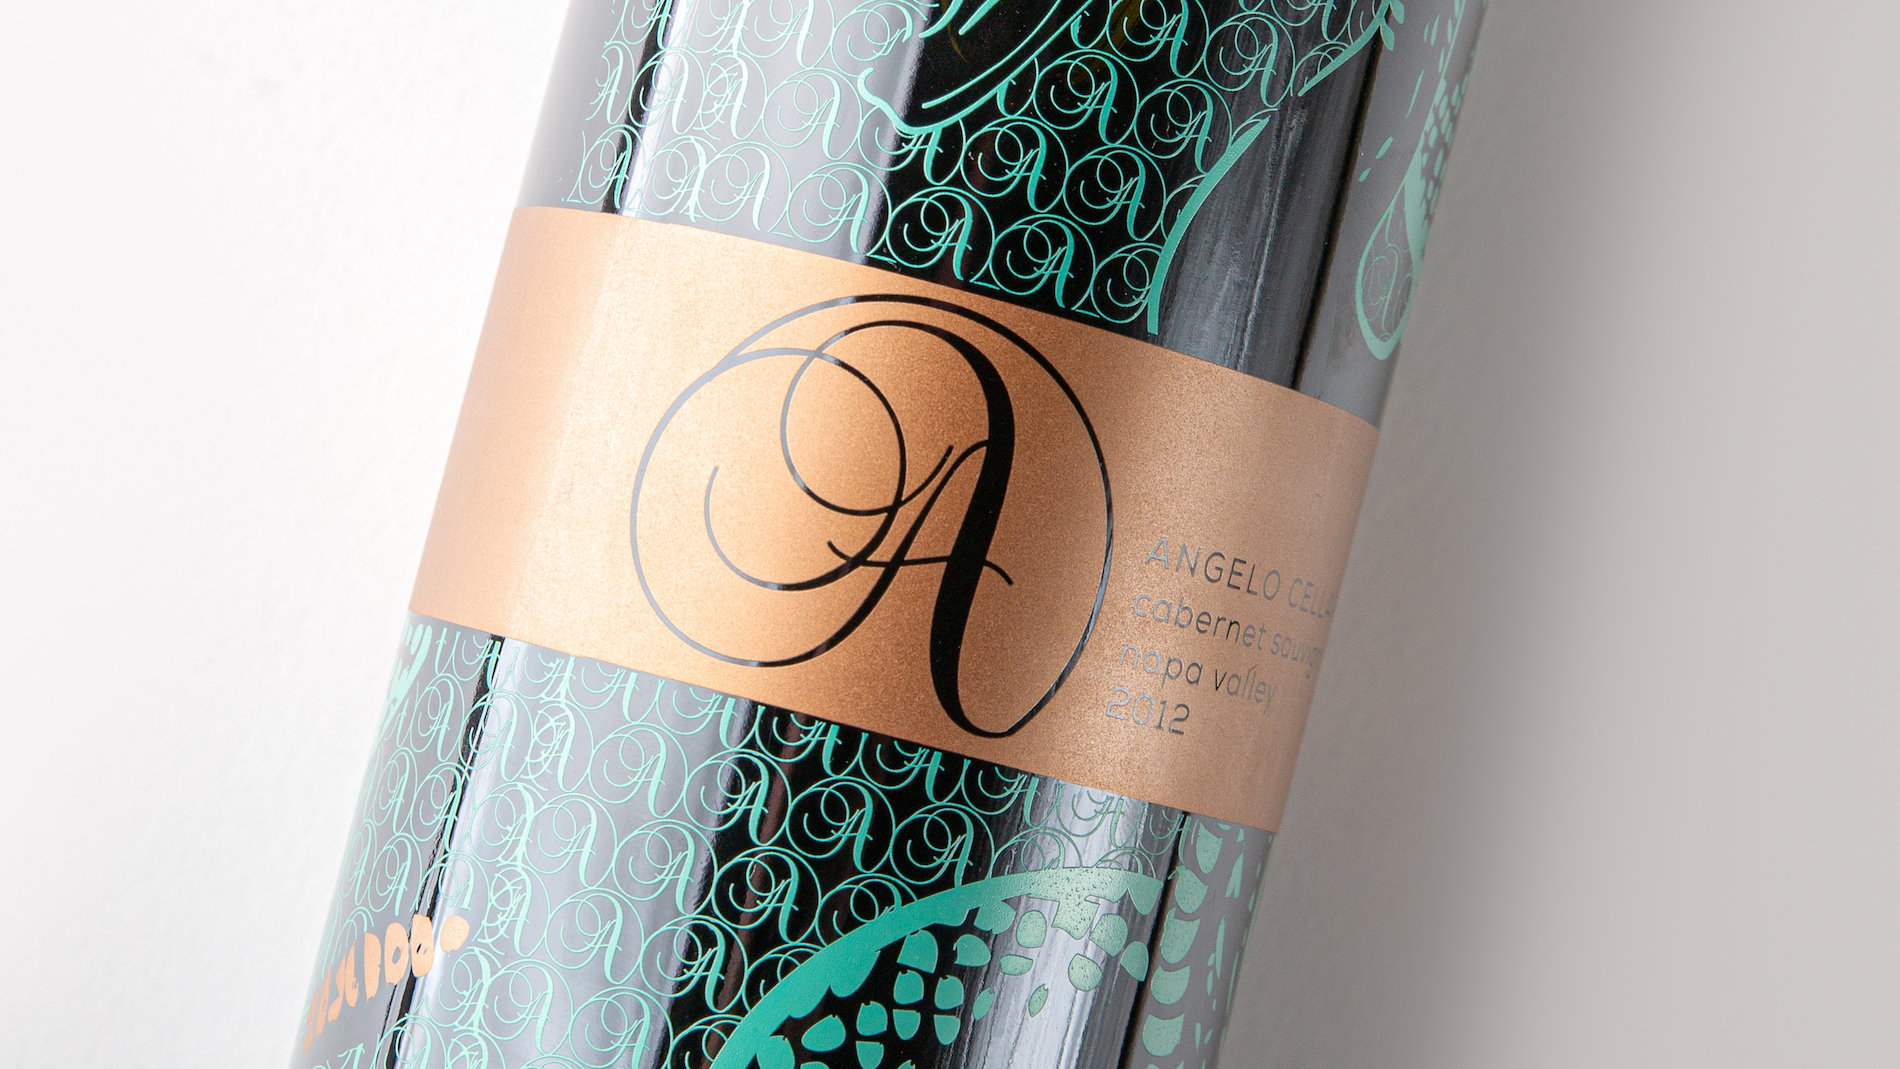 Screen-Printed Rattlesnake Wine Bottle - PaperSpecs